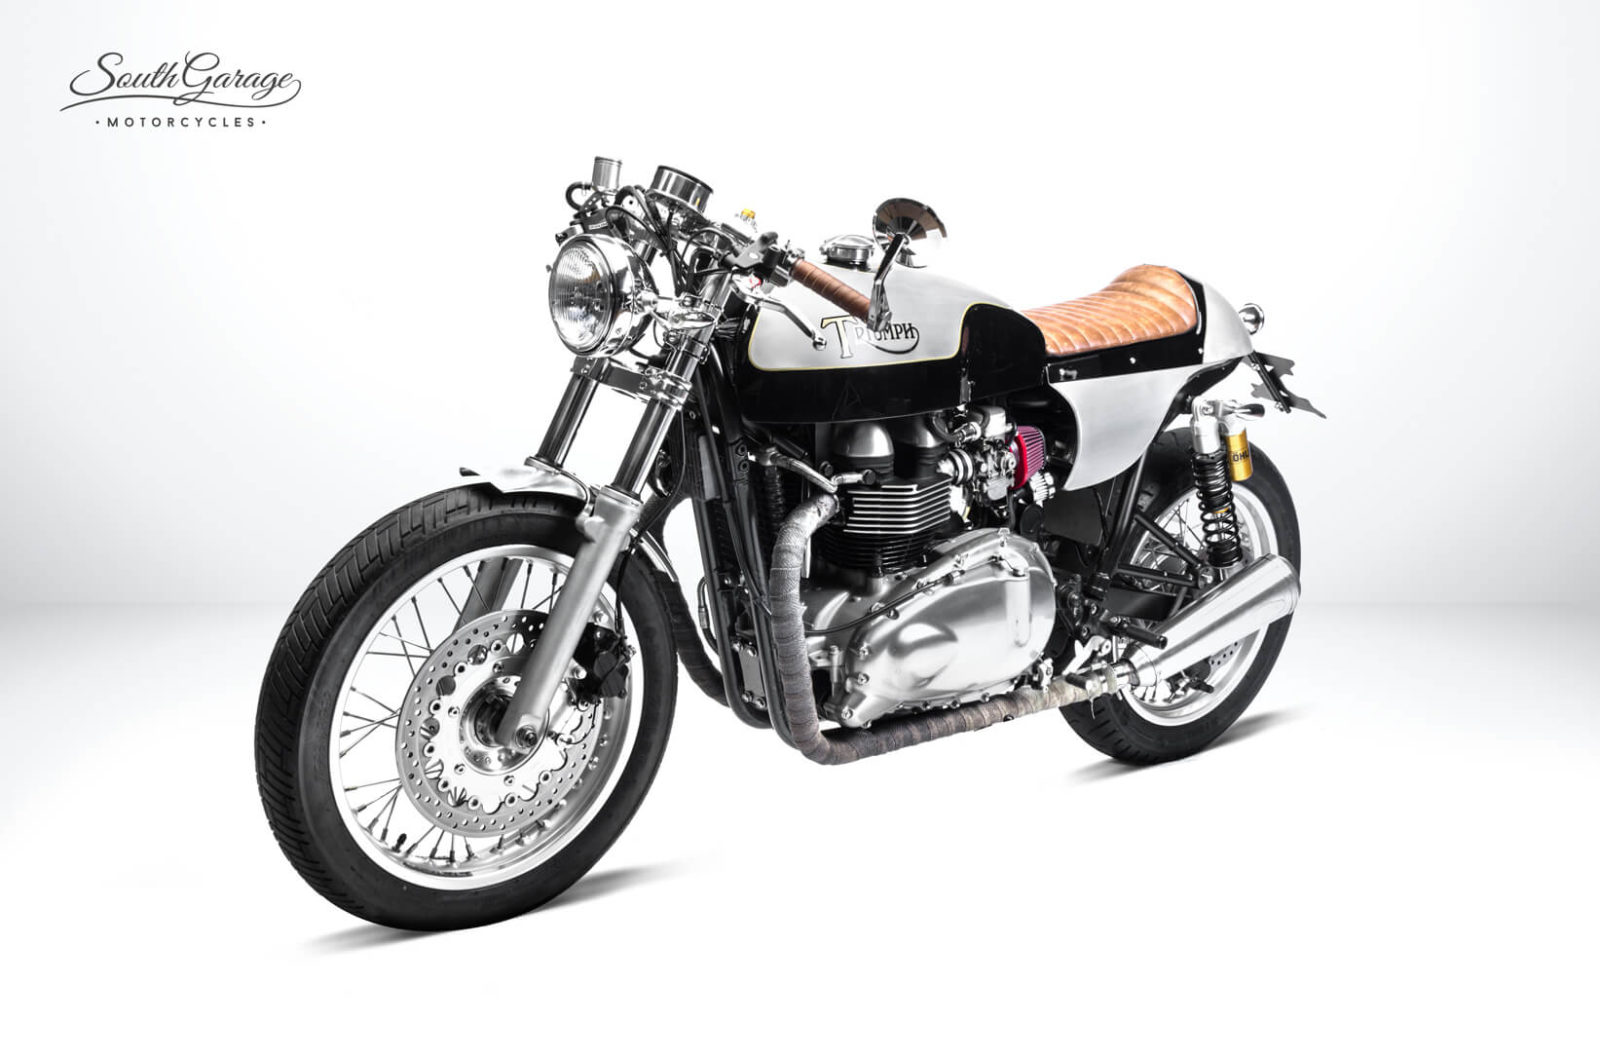 Triumph Truxton Café Racer by South Garage 2